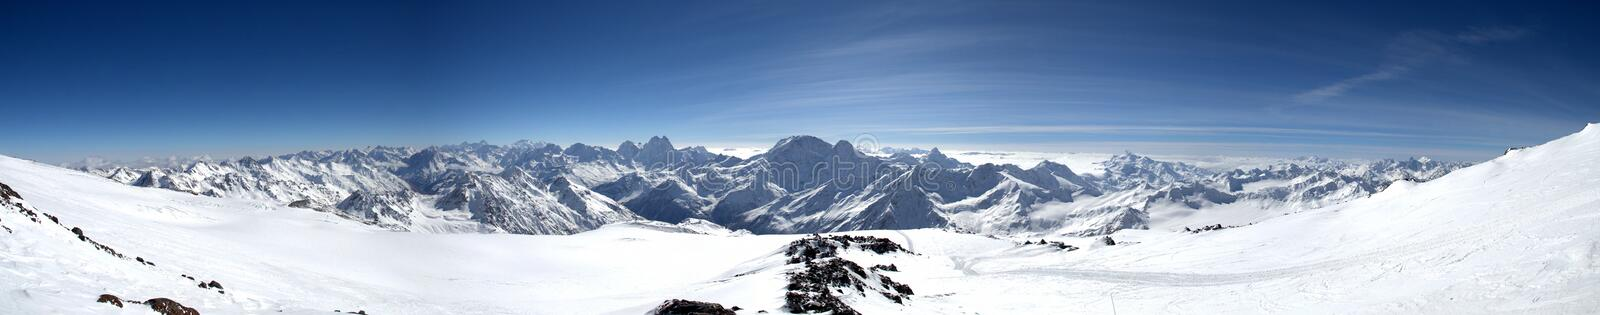 Mountains view royalty free stock photo